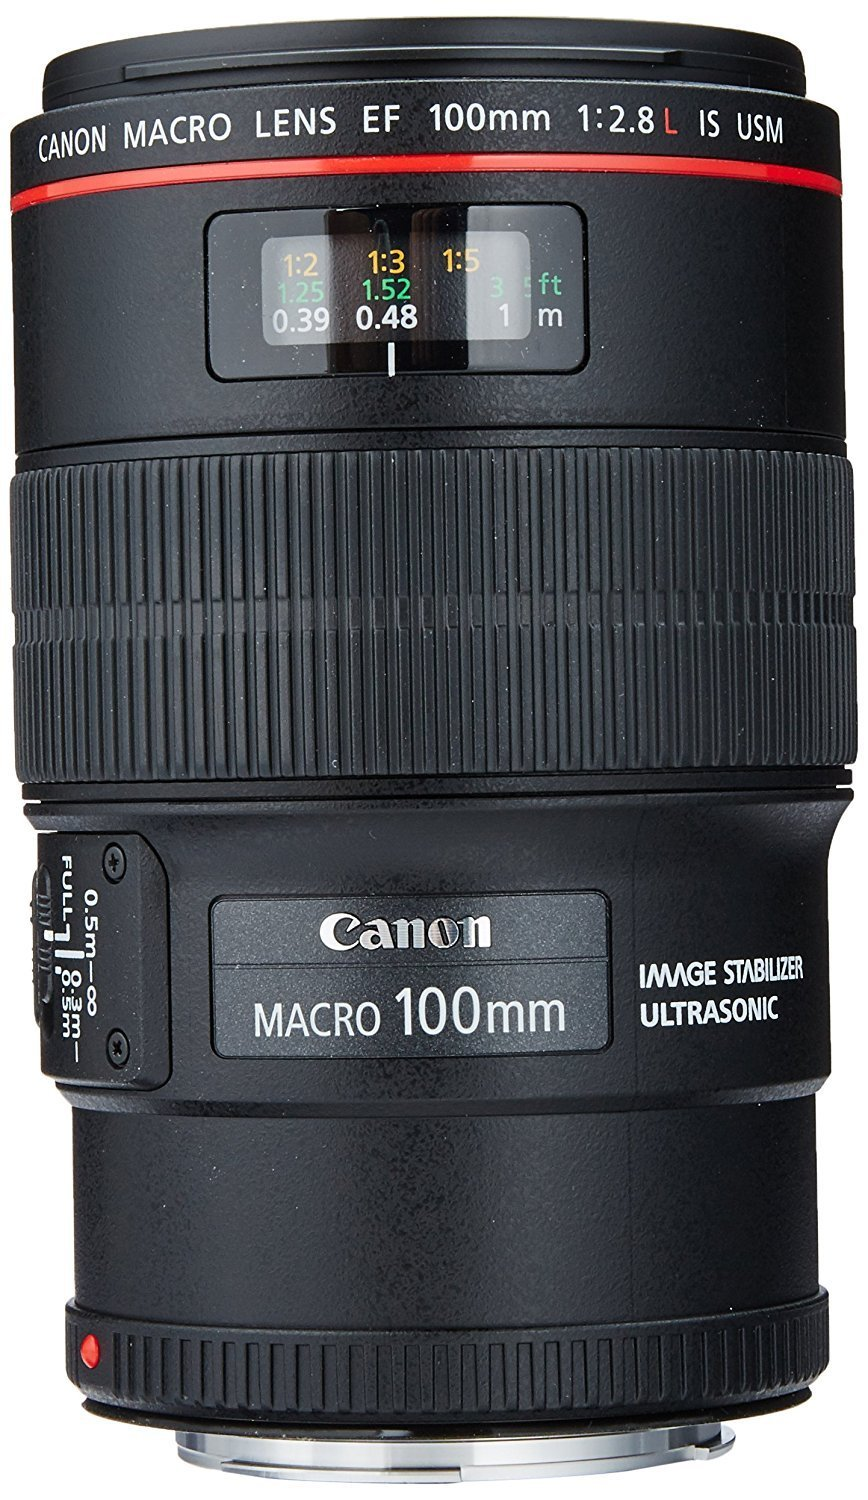 Canon EF 100mm f:2.8L IS USM Macro Lens for Canon Digital SLR Cameras